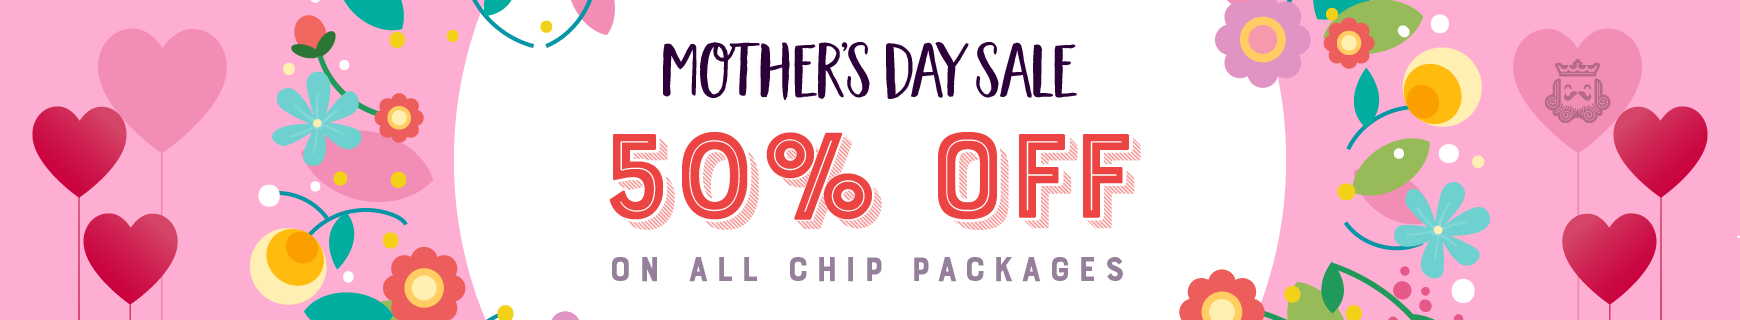 Mother's day sale %28870 x 160%29 2x